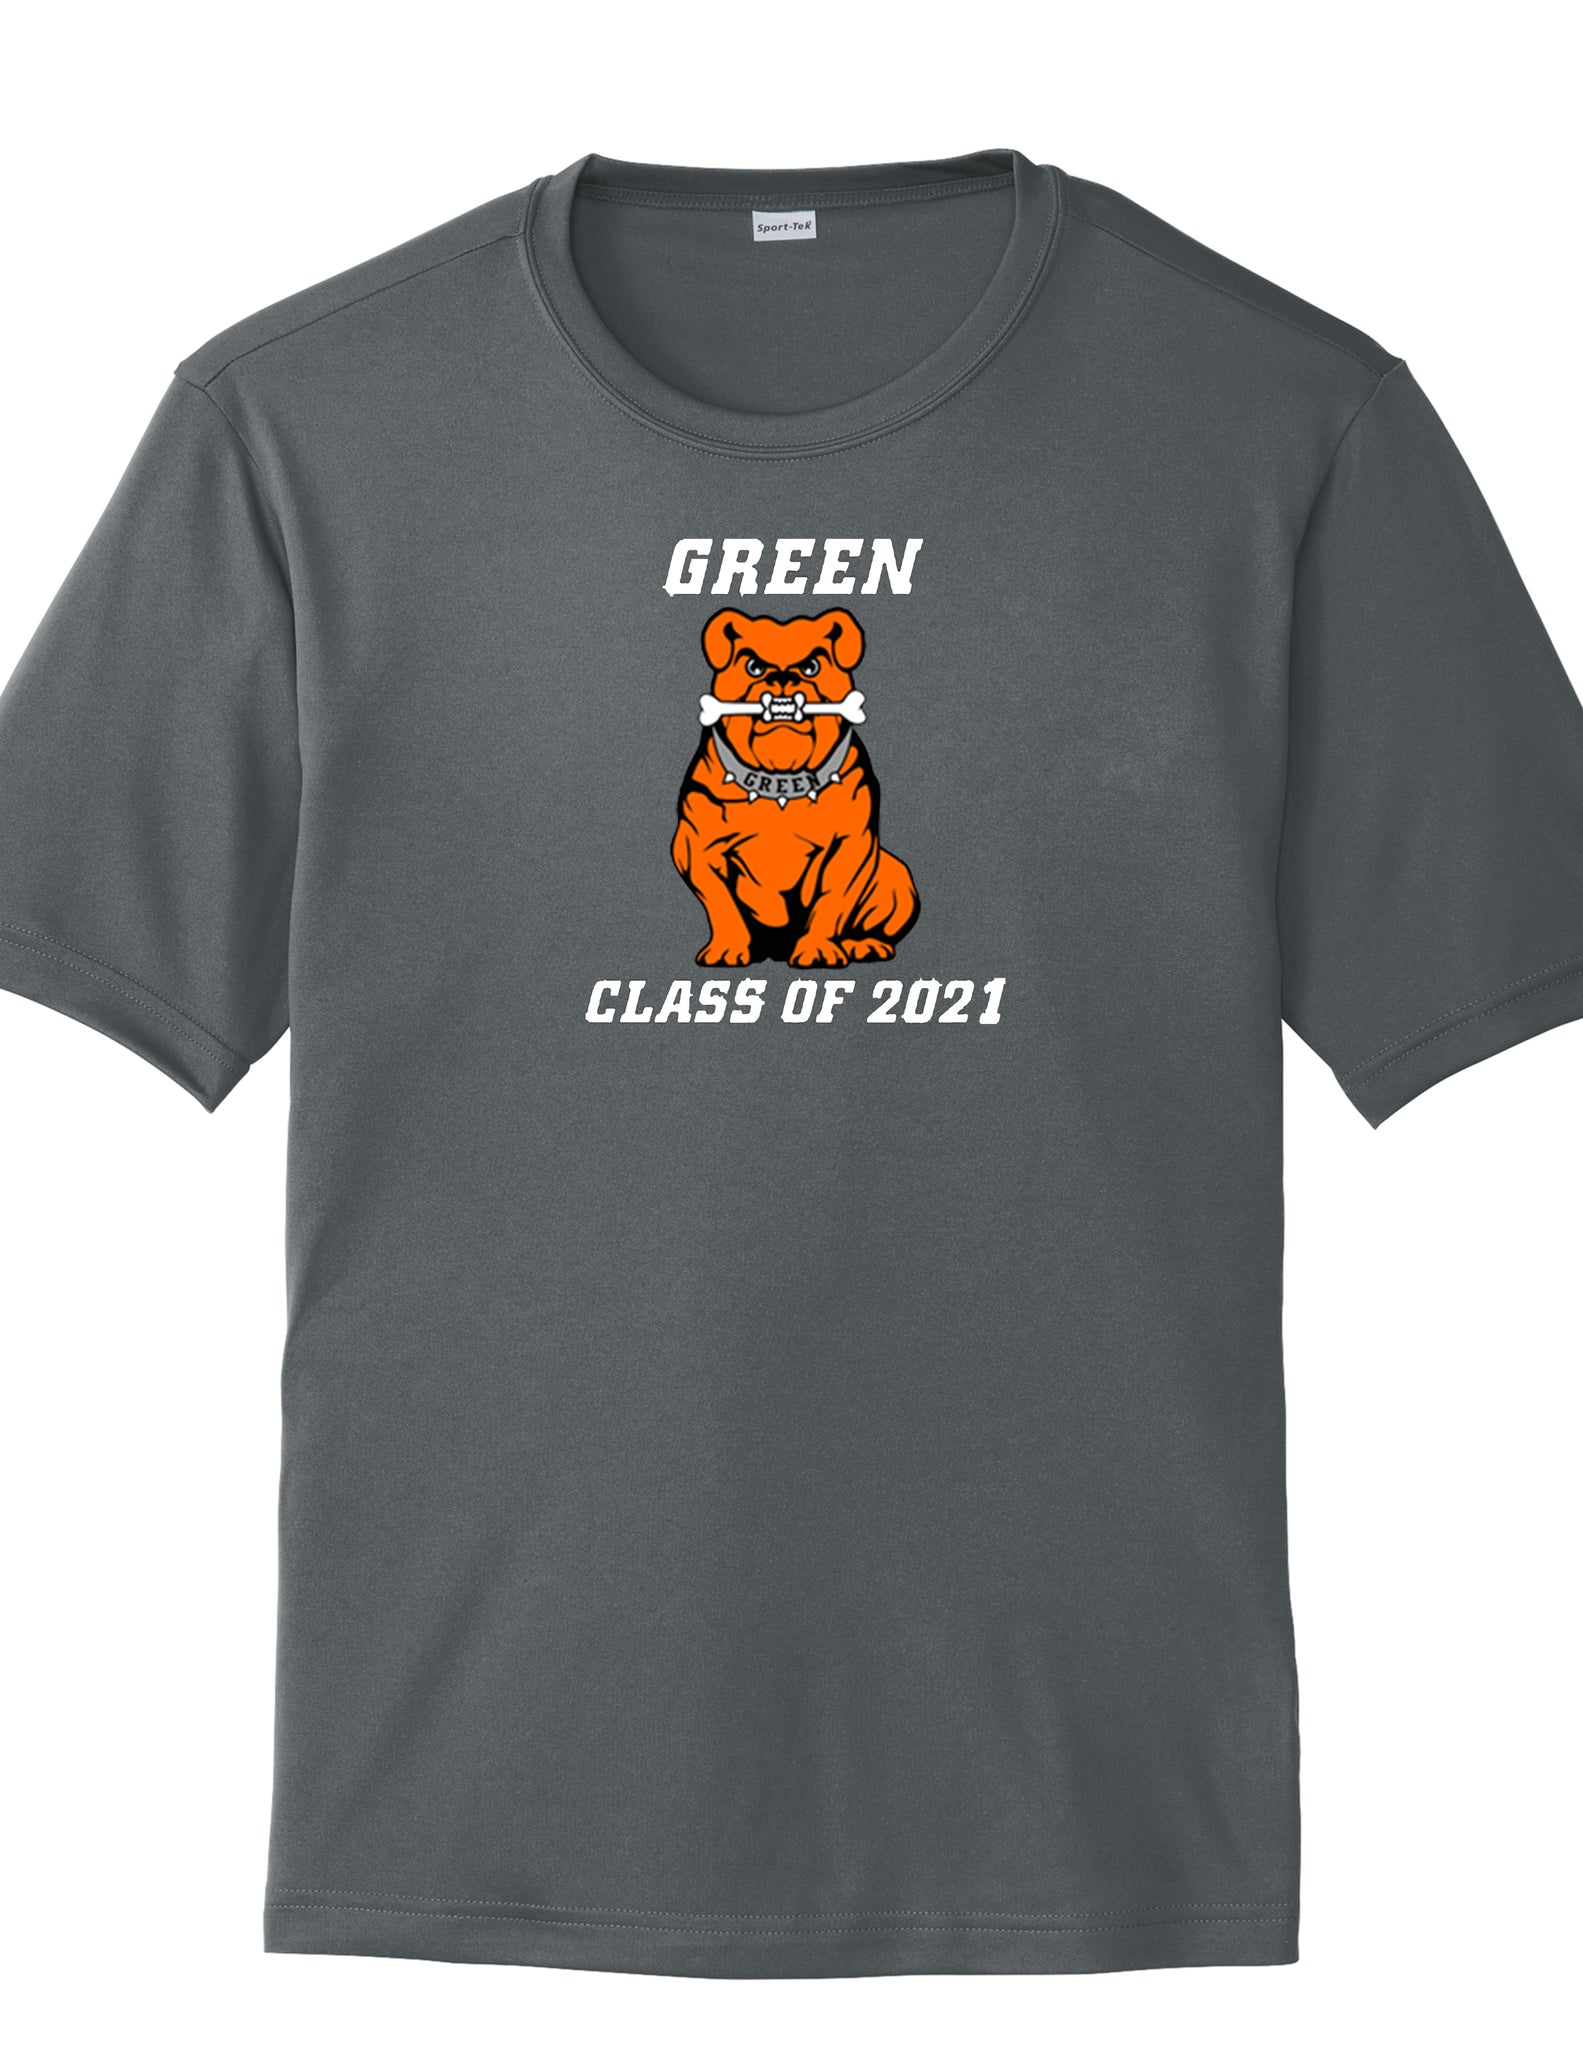 Green Class of 2021 Men's Polyester Tee